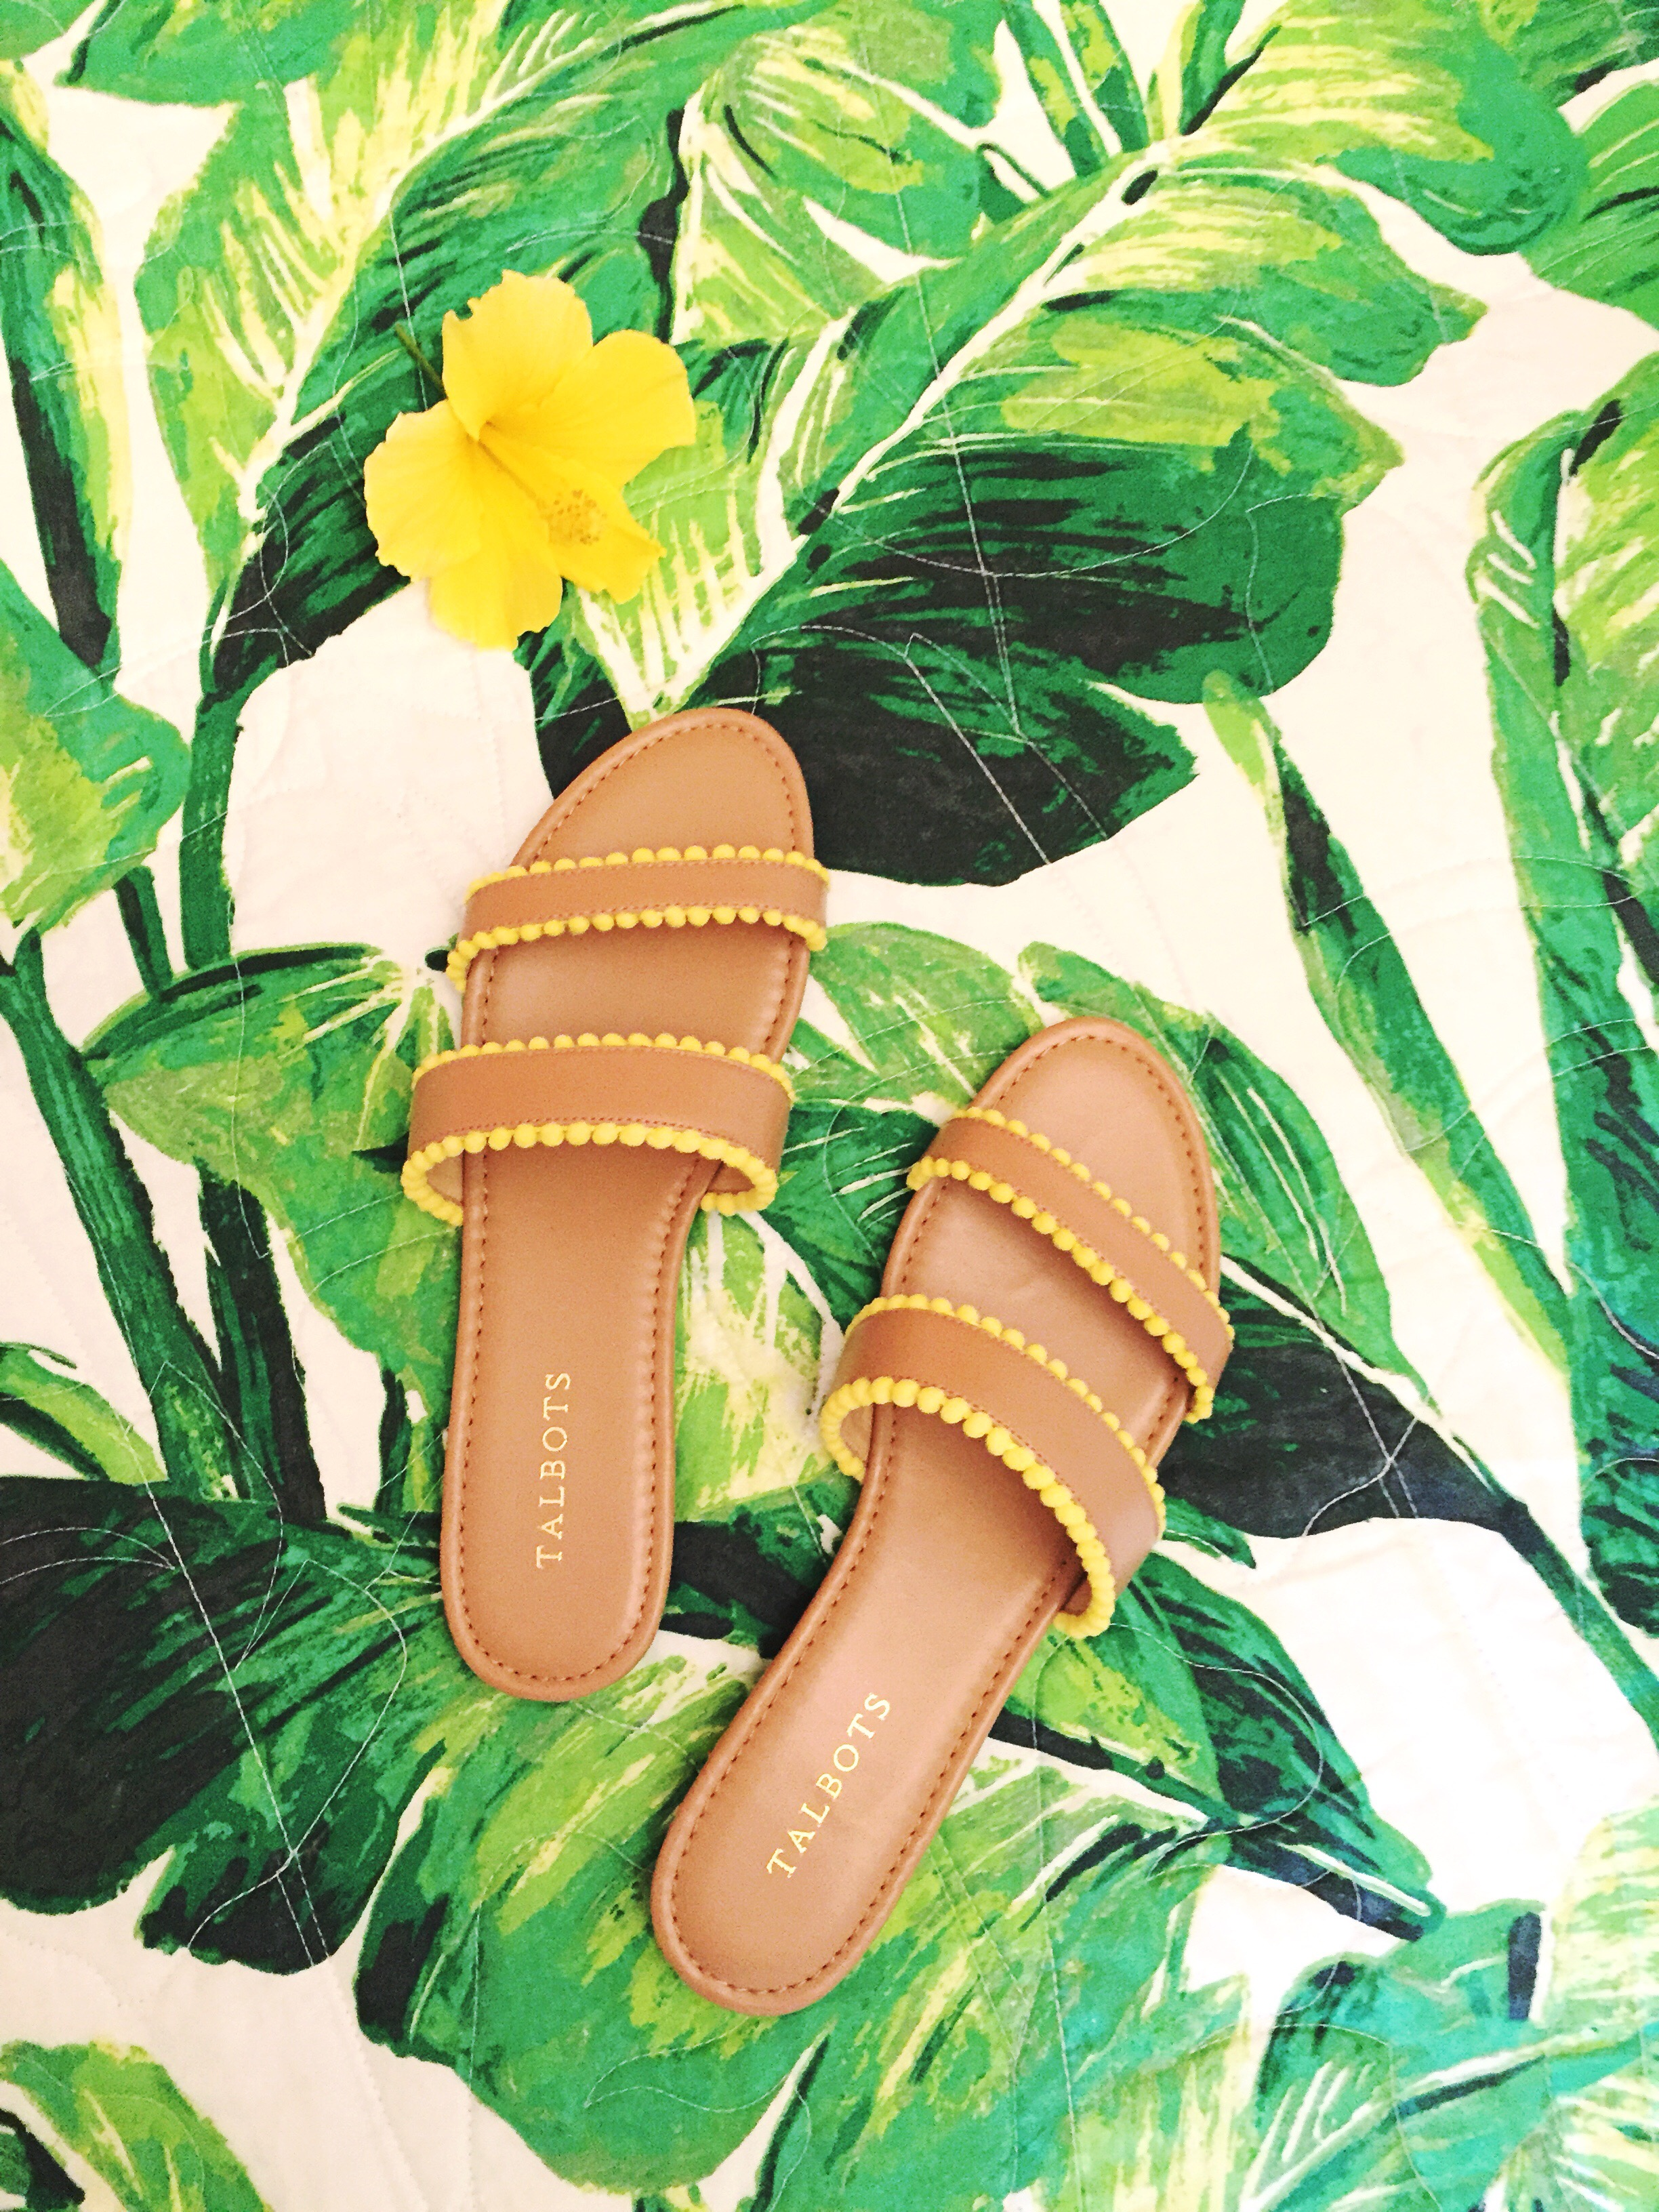 Talbots Yellow Pom Pom Sandal for Summer